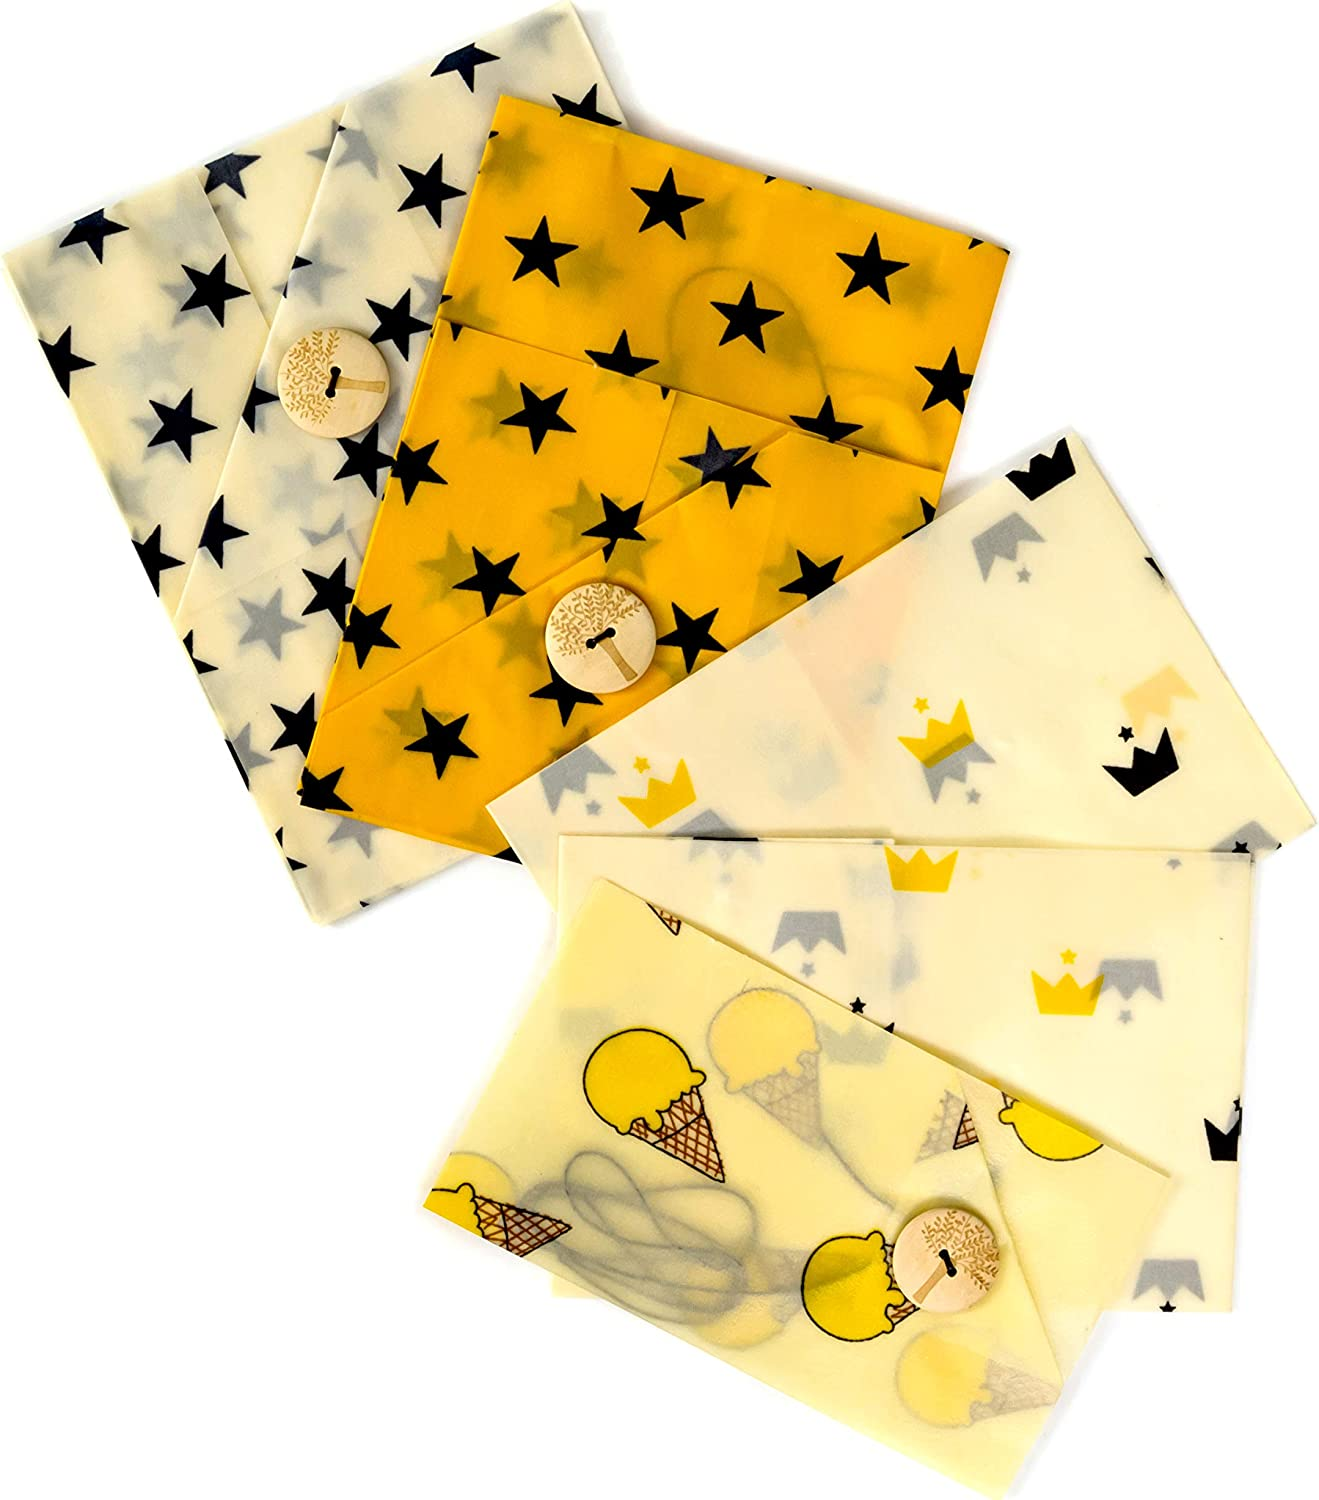 Reusable Beeswax Food Wrap (5 Pack) – Bread, Sandwich & Cheese Wraps | Biodegradable, Sustainable, Eco-Friendly Food Storage Wrap by Lemon Tree | 100% Plastic Free Organic Food Wrap, Easy-Seal Button